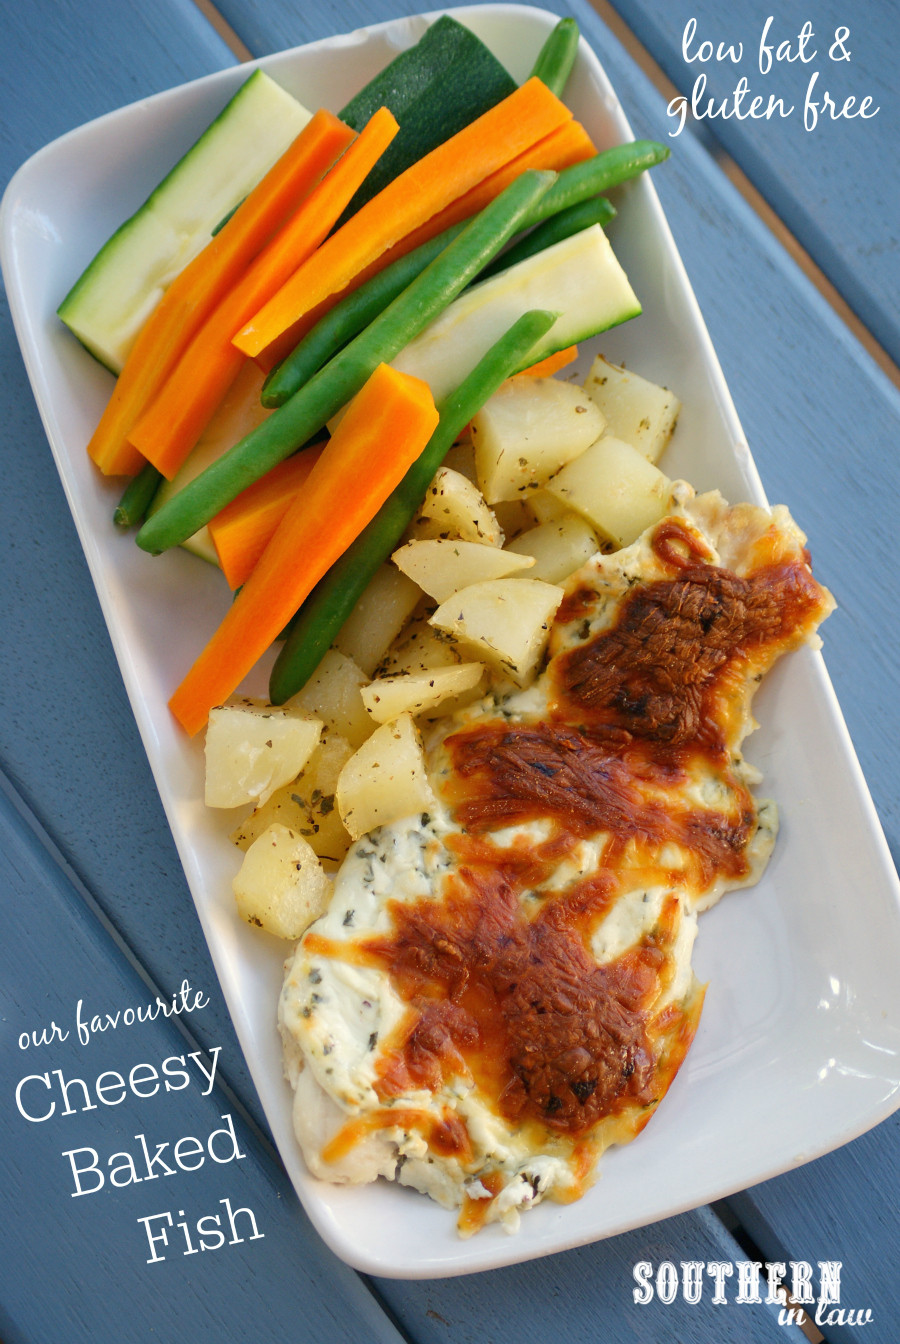 Healthy Low Fat Dinner Recipes  Southern In Law Recipe Our Favourite Cheesy Baked Fish